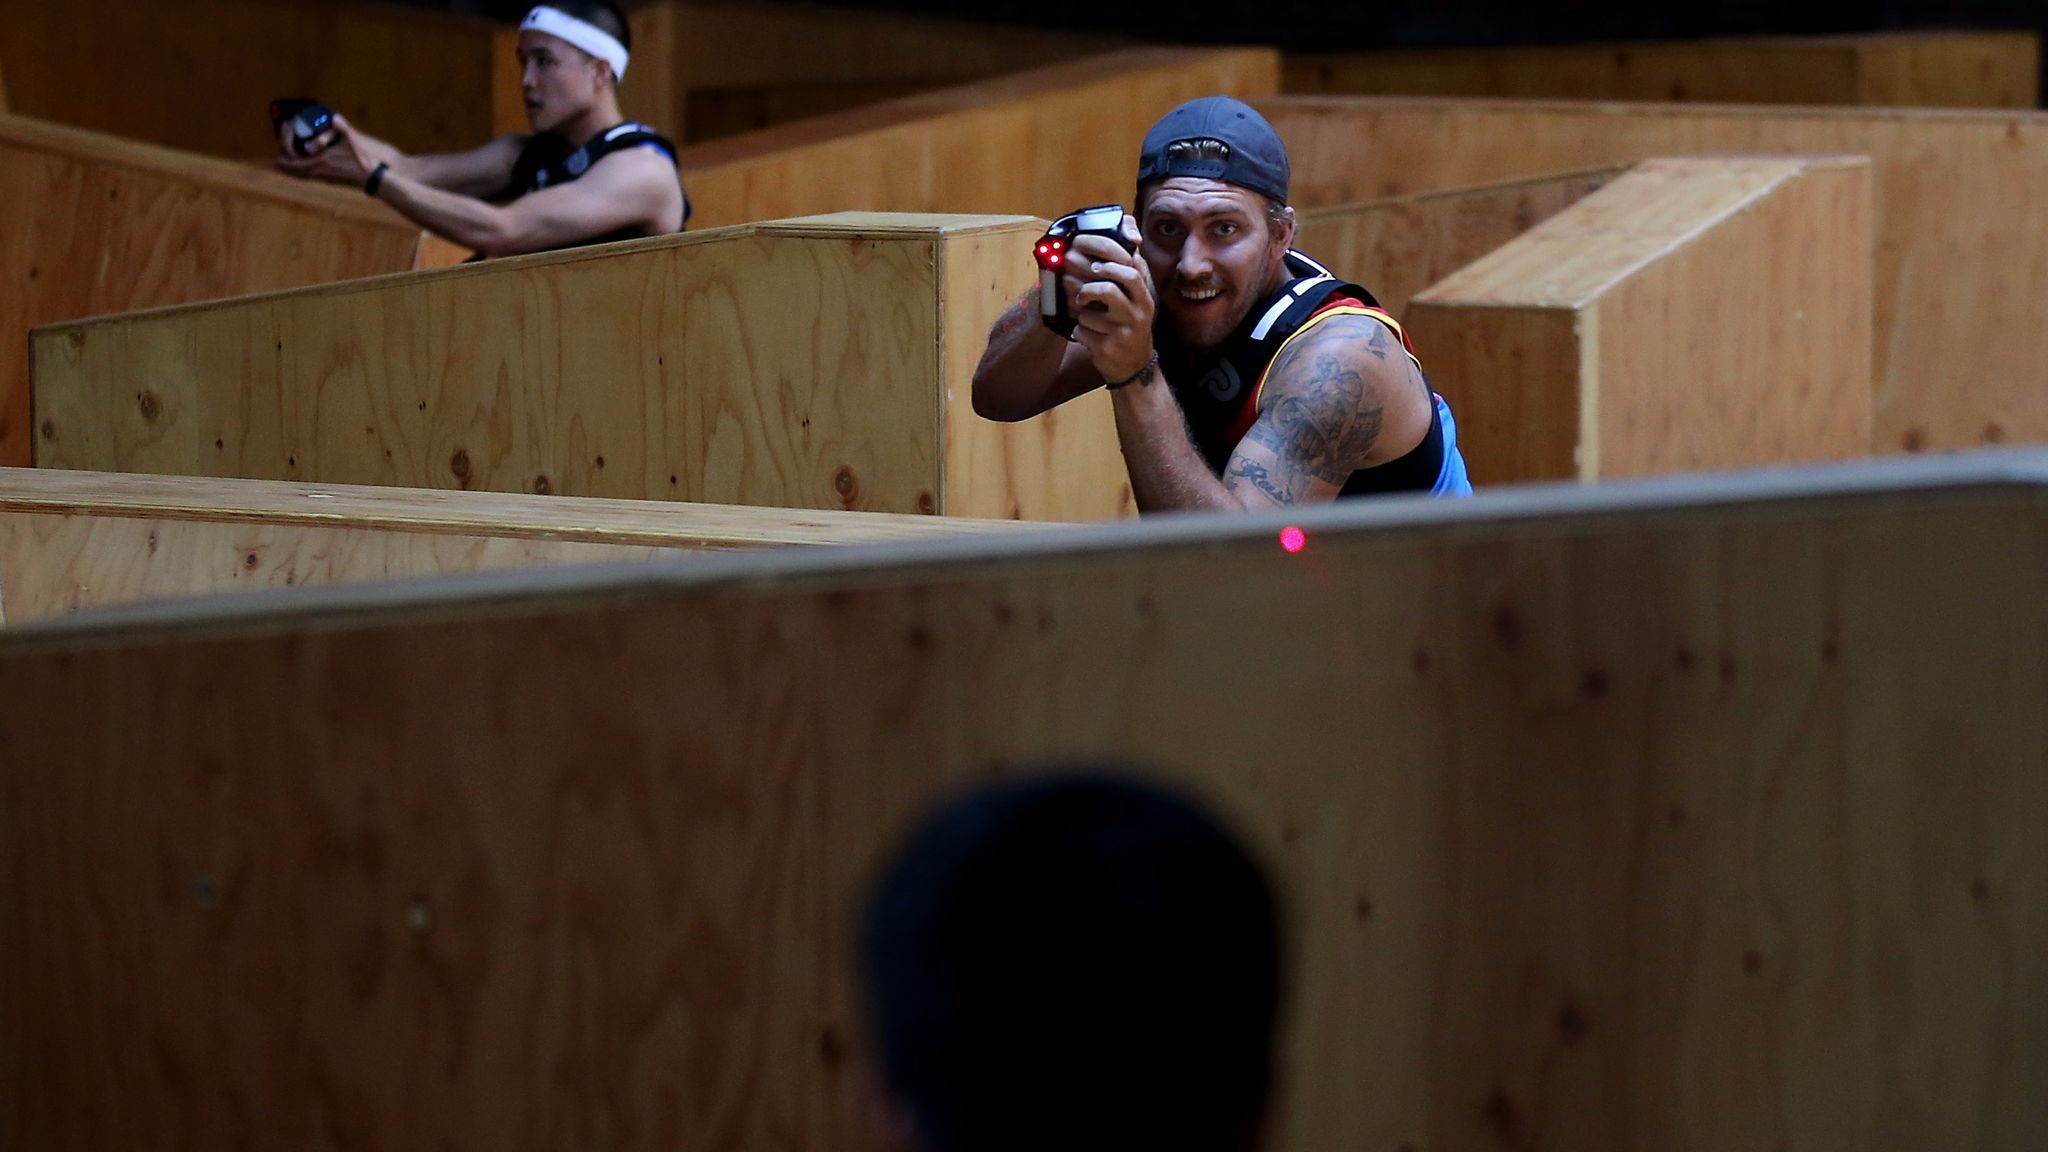 A round of laser tag at the LazRfit gym in downtown Los Angeles.